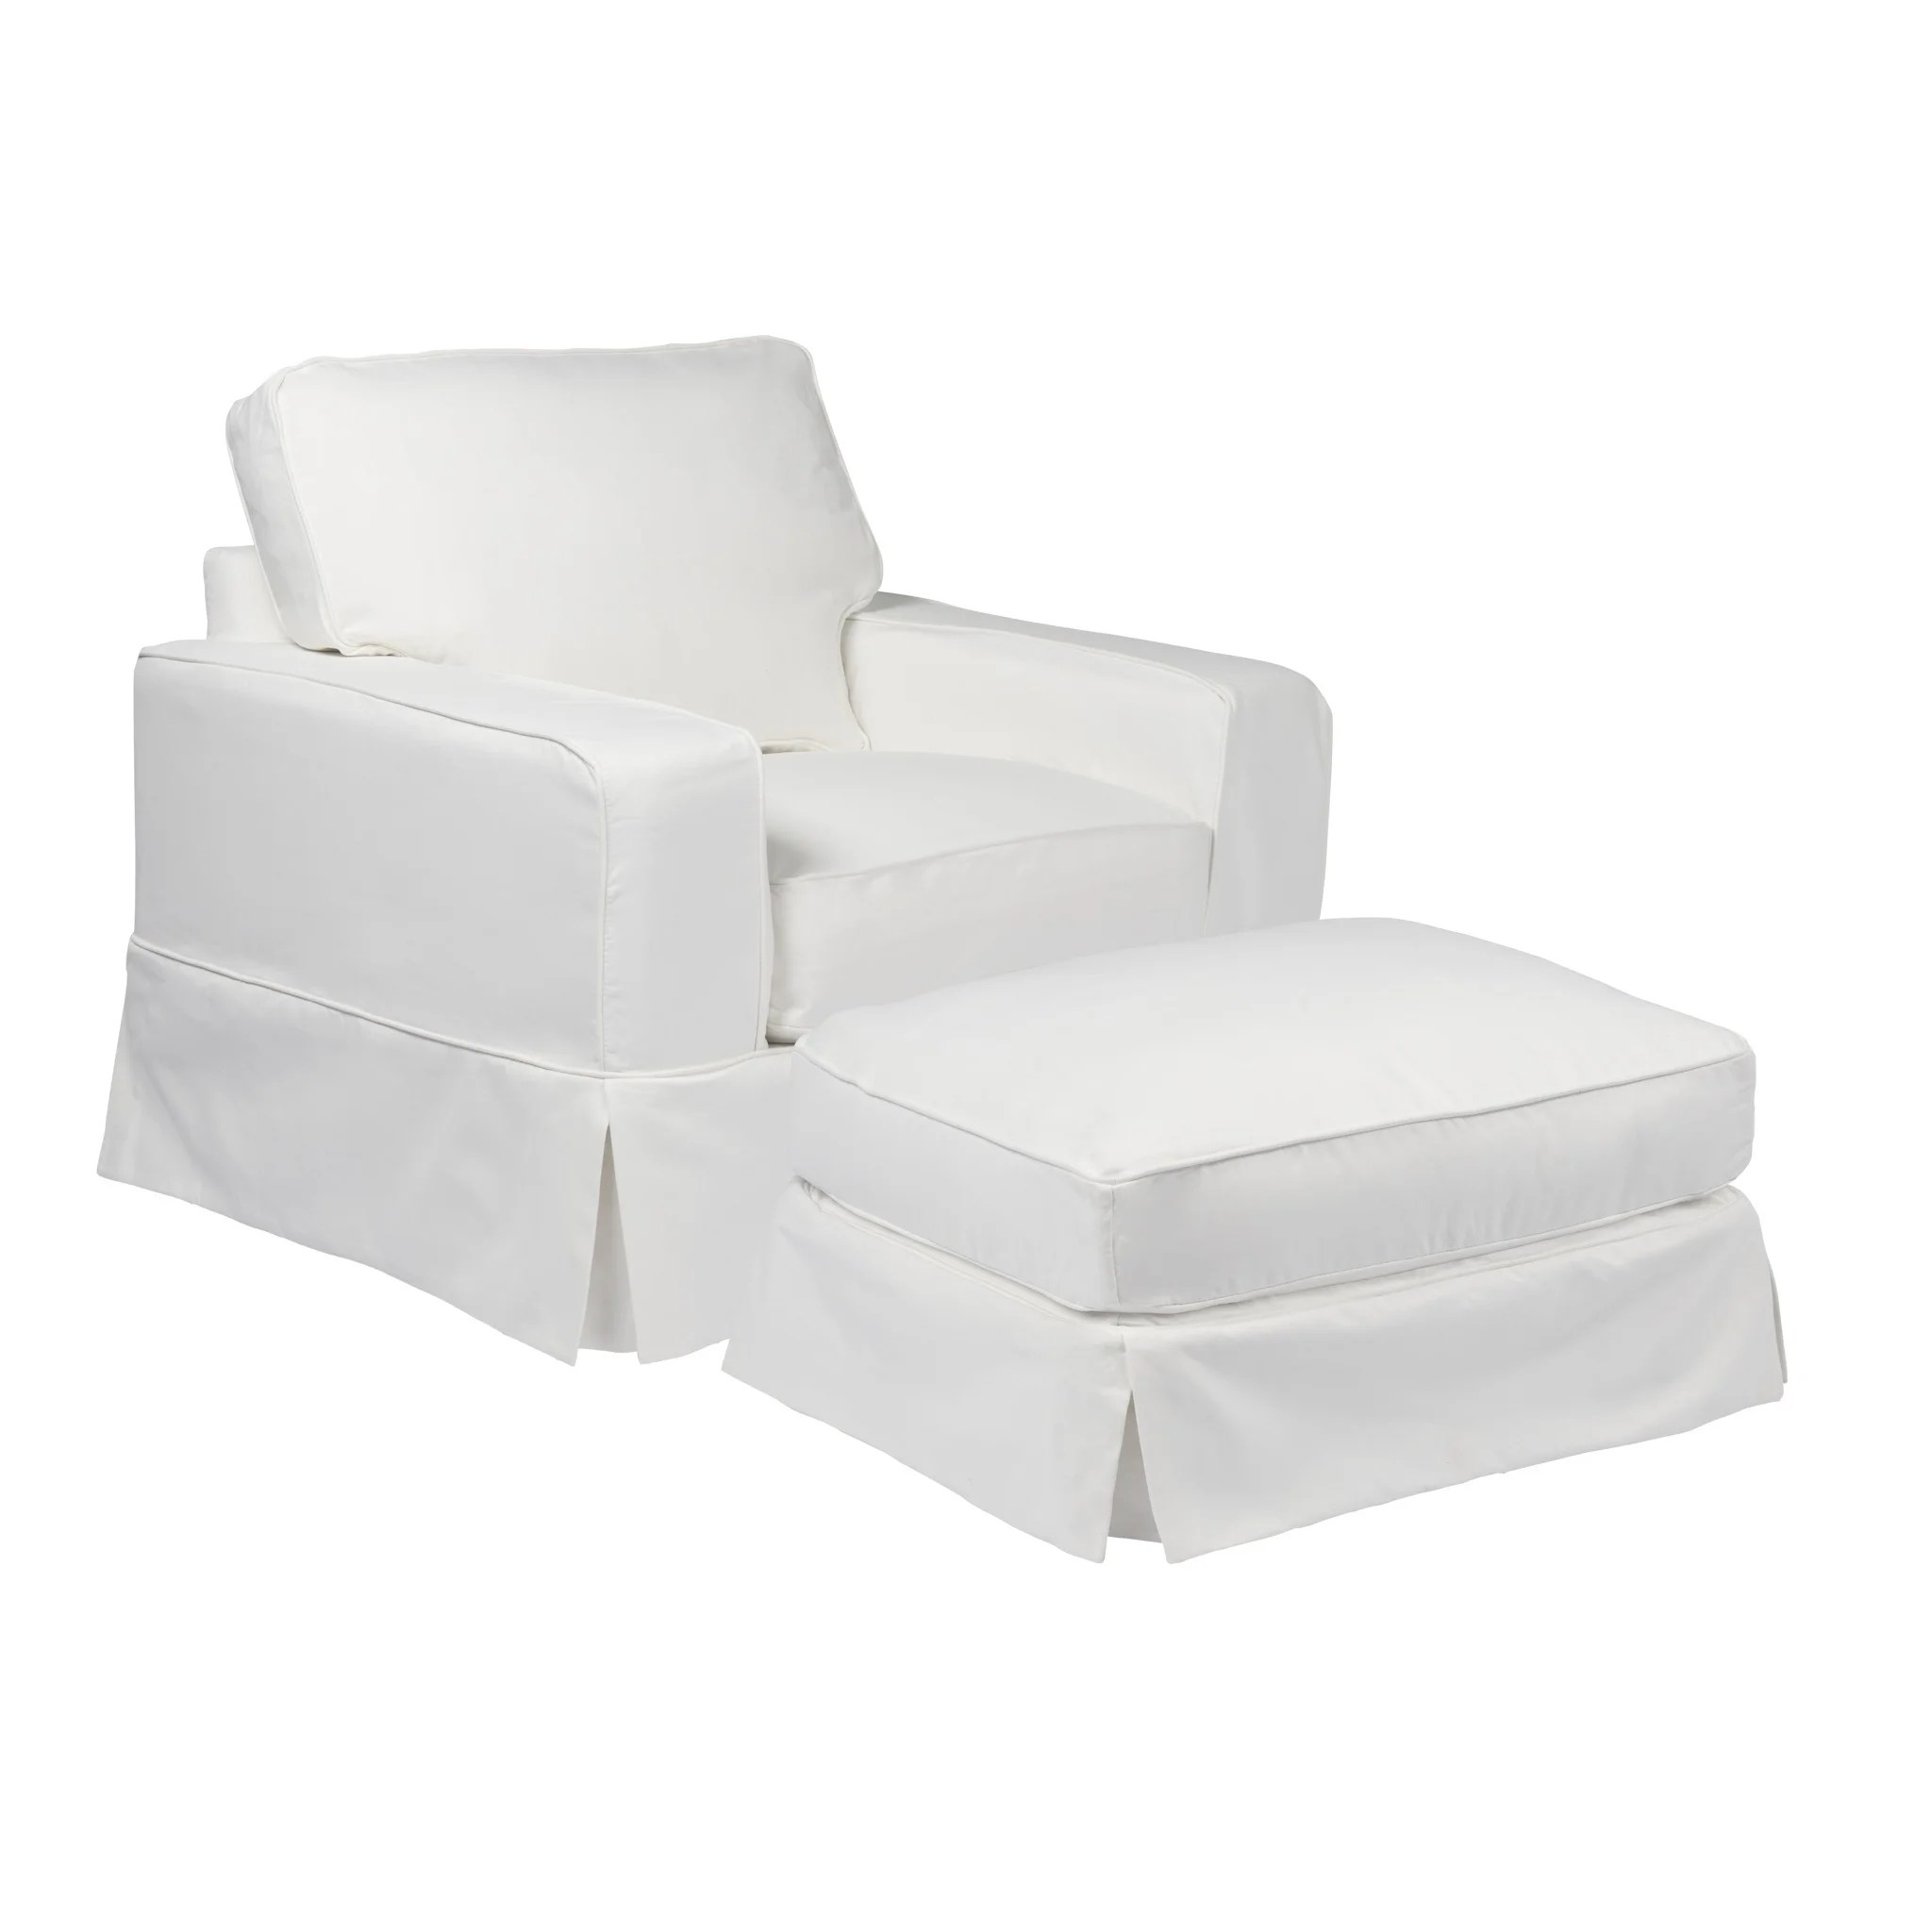 gray chair and ottoman slipcovers gaming reviews 2018 shop sunset trading americana slipcover set performance white